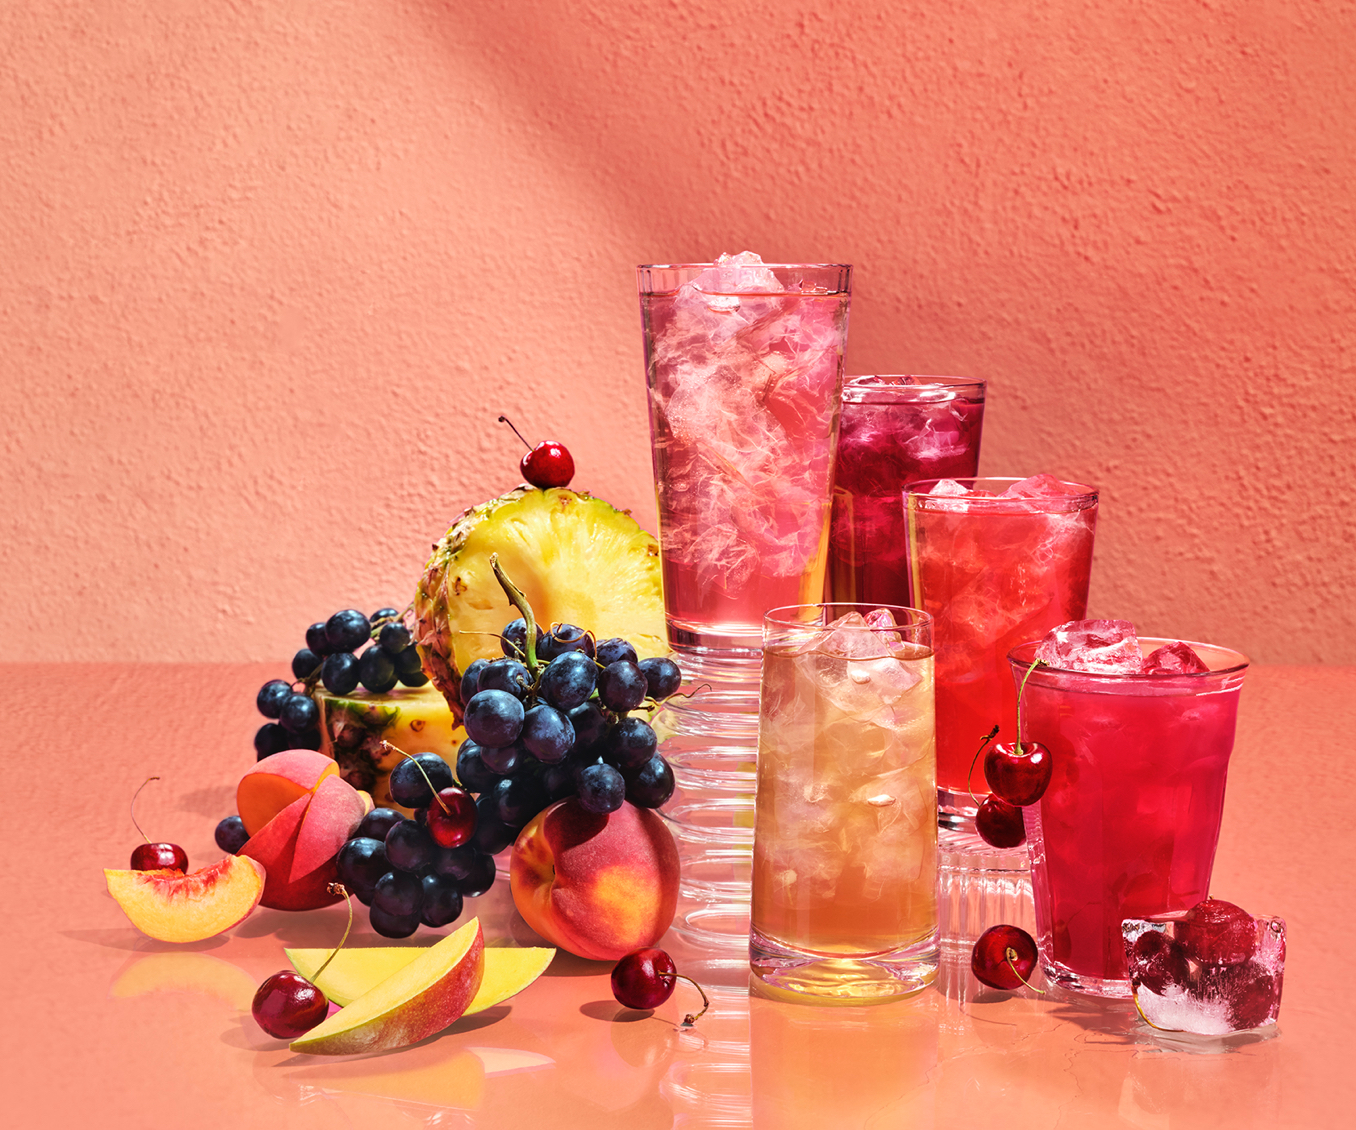 Various glasses filled with iced teas next to tropical fruits.